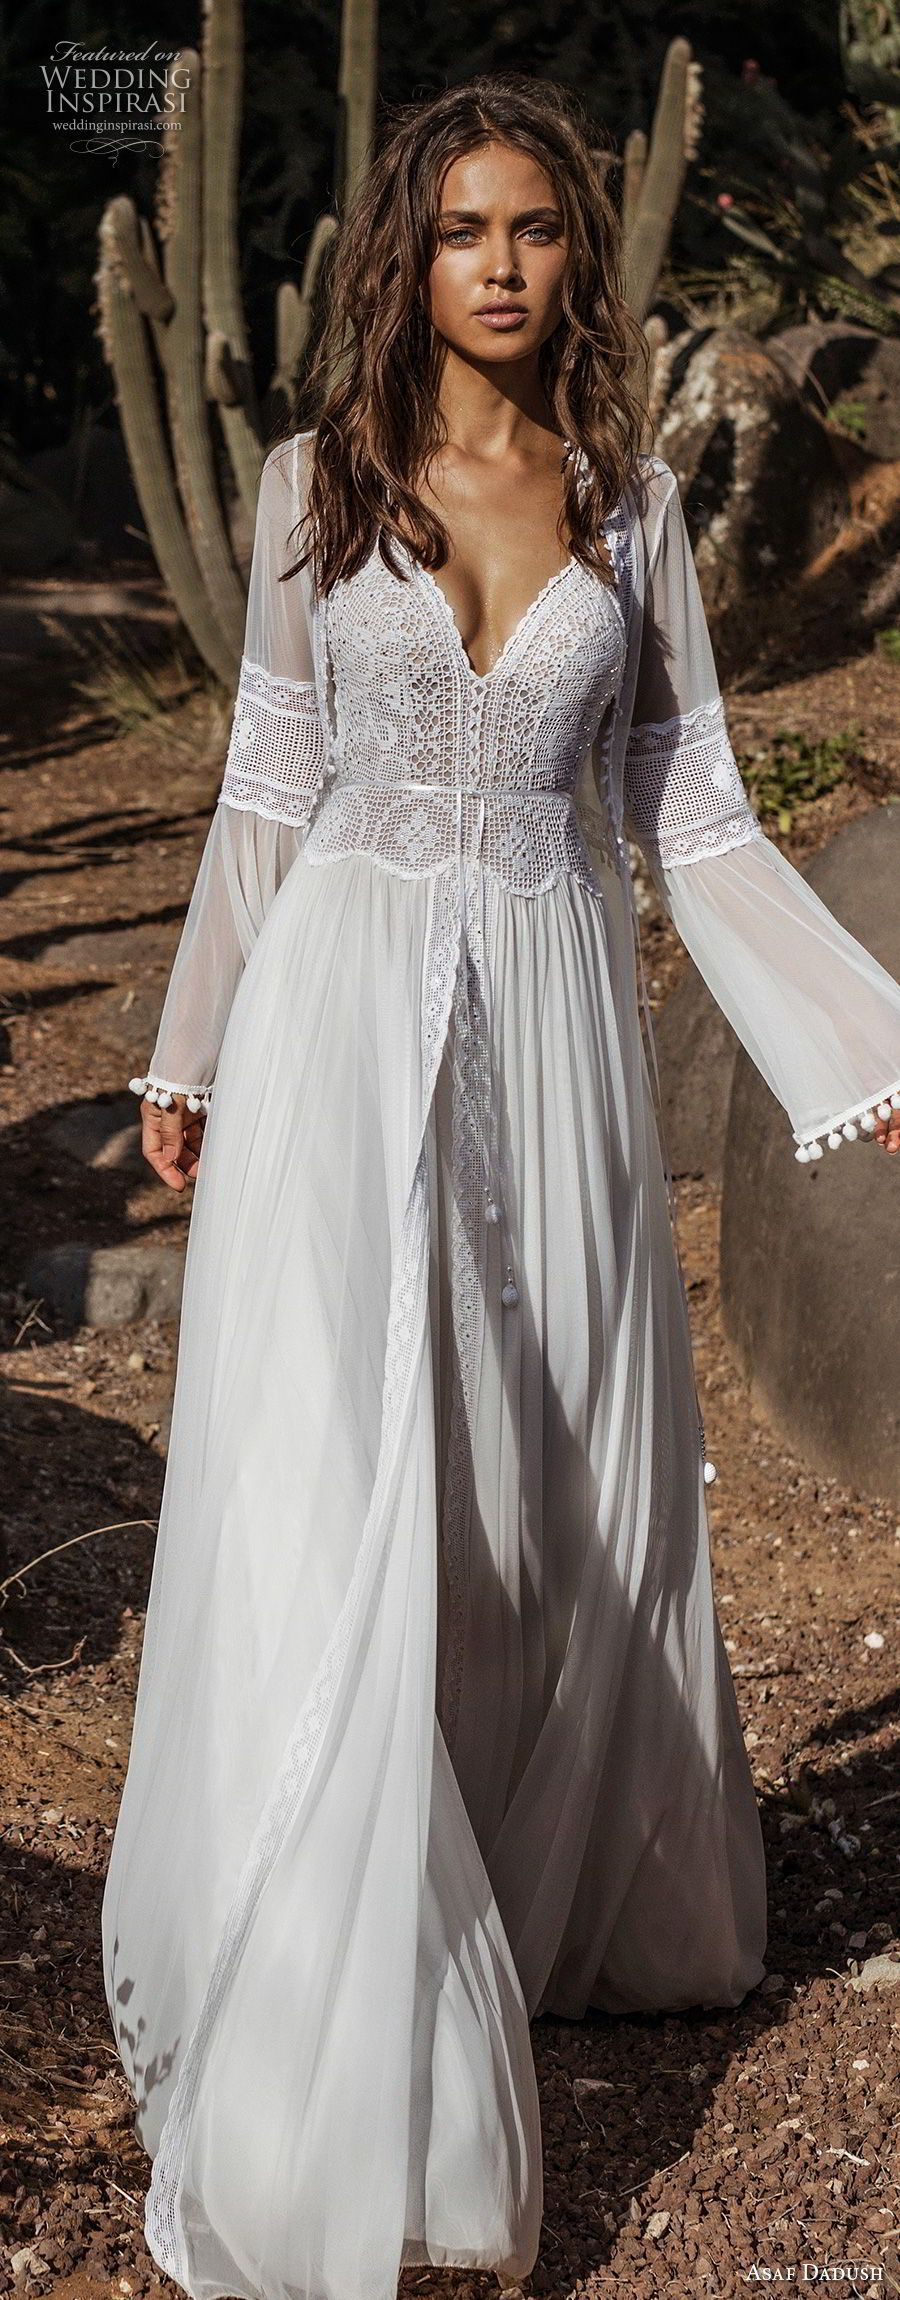 Asaf dadush bridal long lantern sleeves thin strap sweetheart